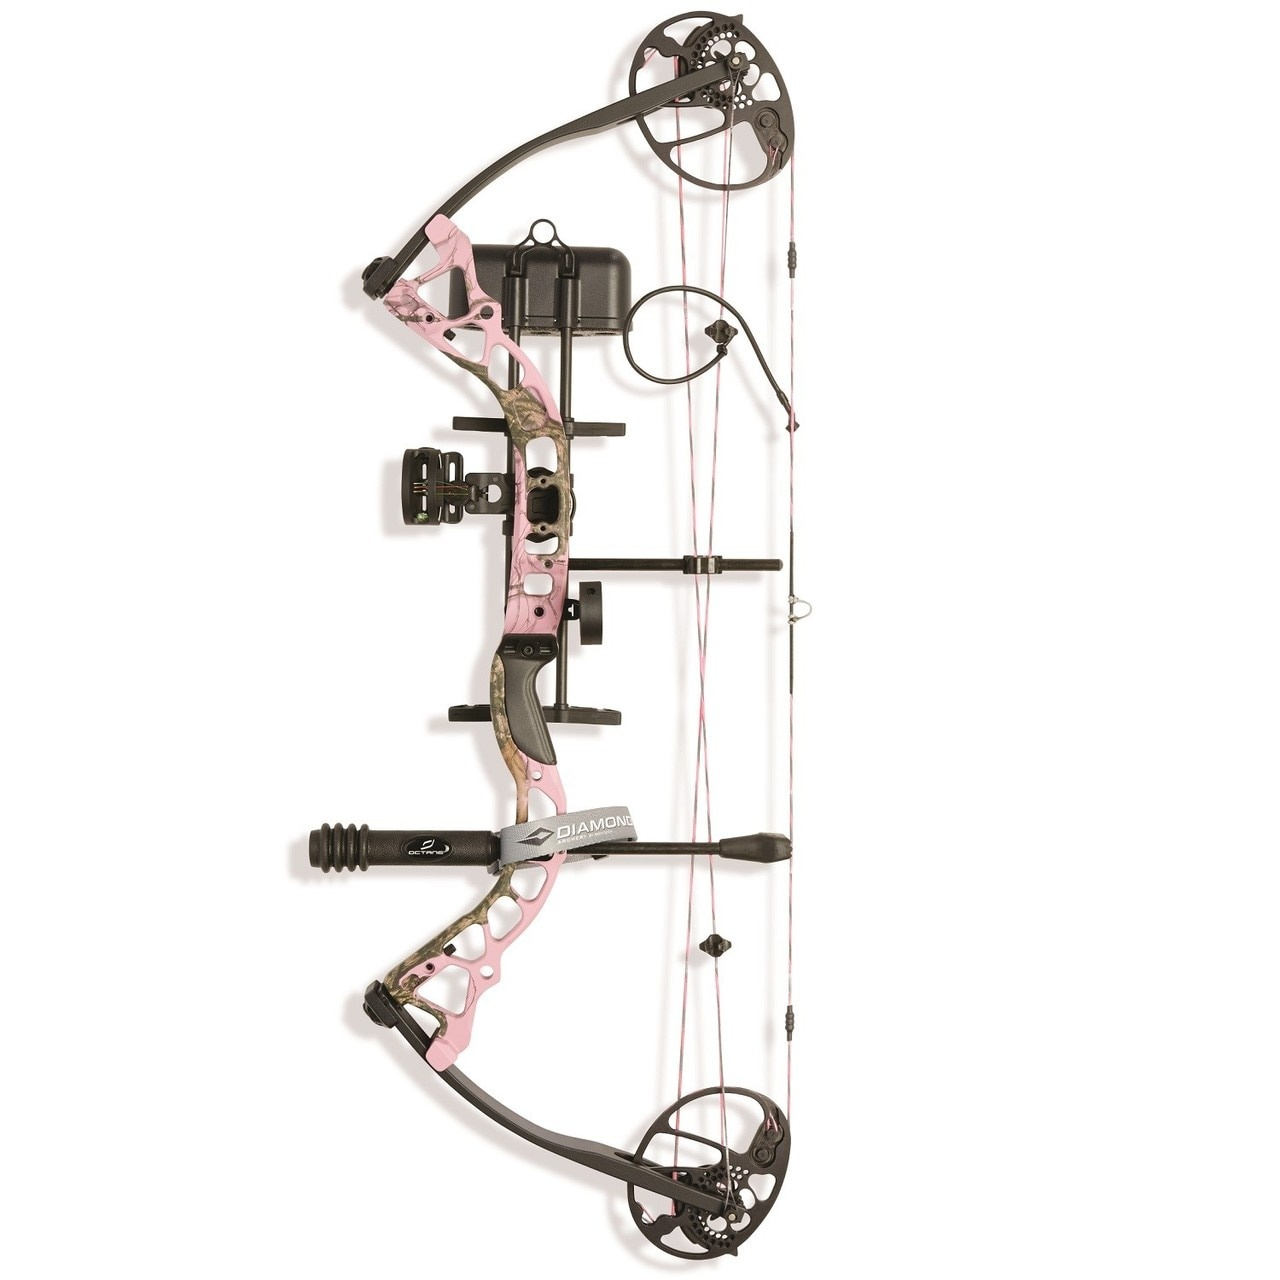 Diamond Archery Infinate Edge Pro RH 5-70# Pink